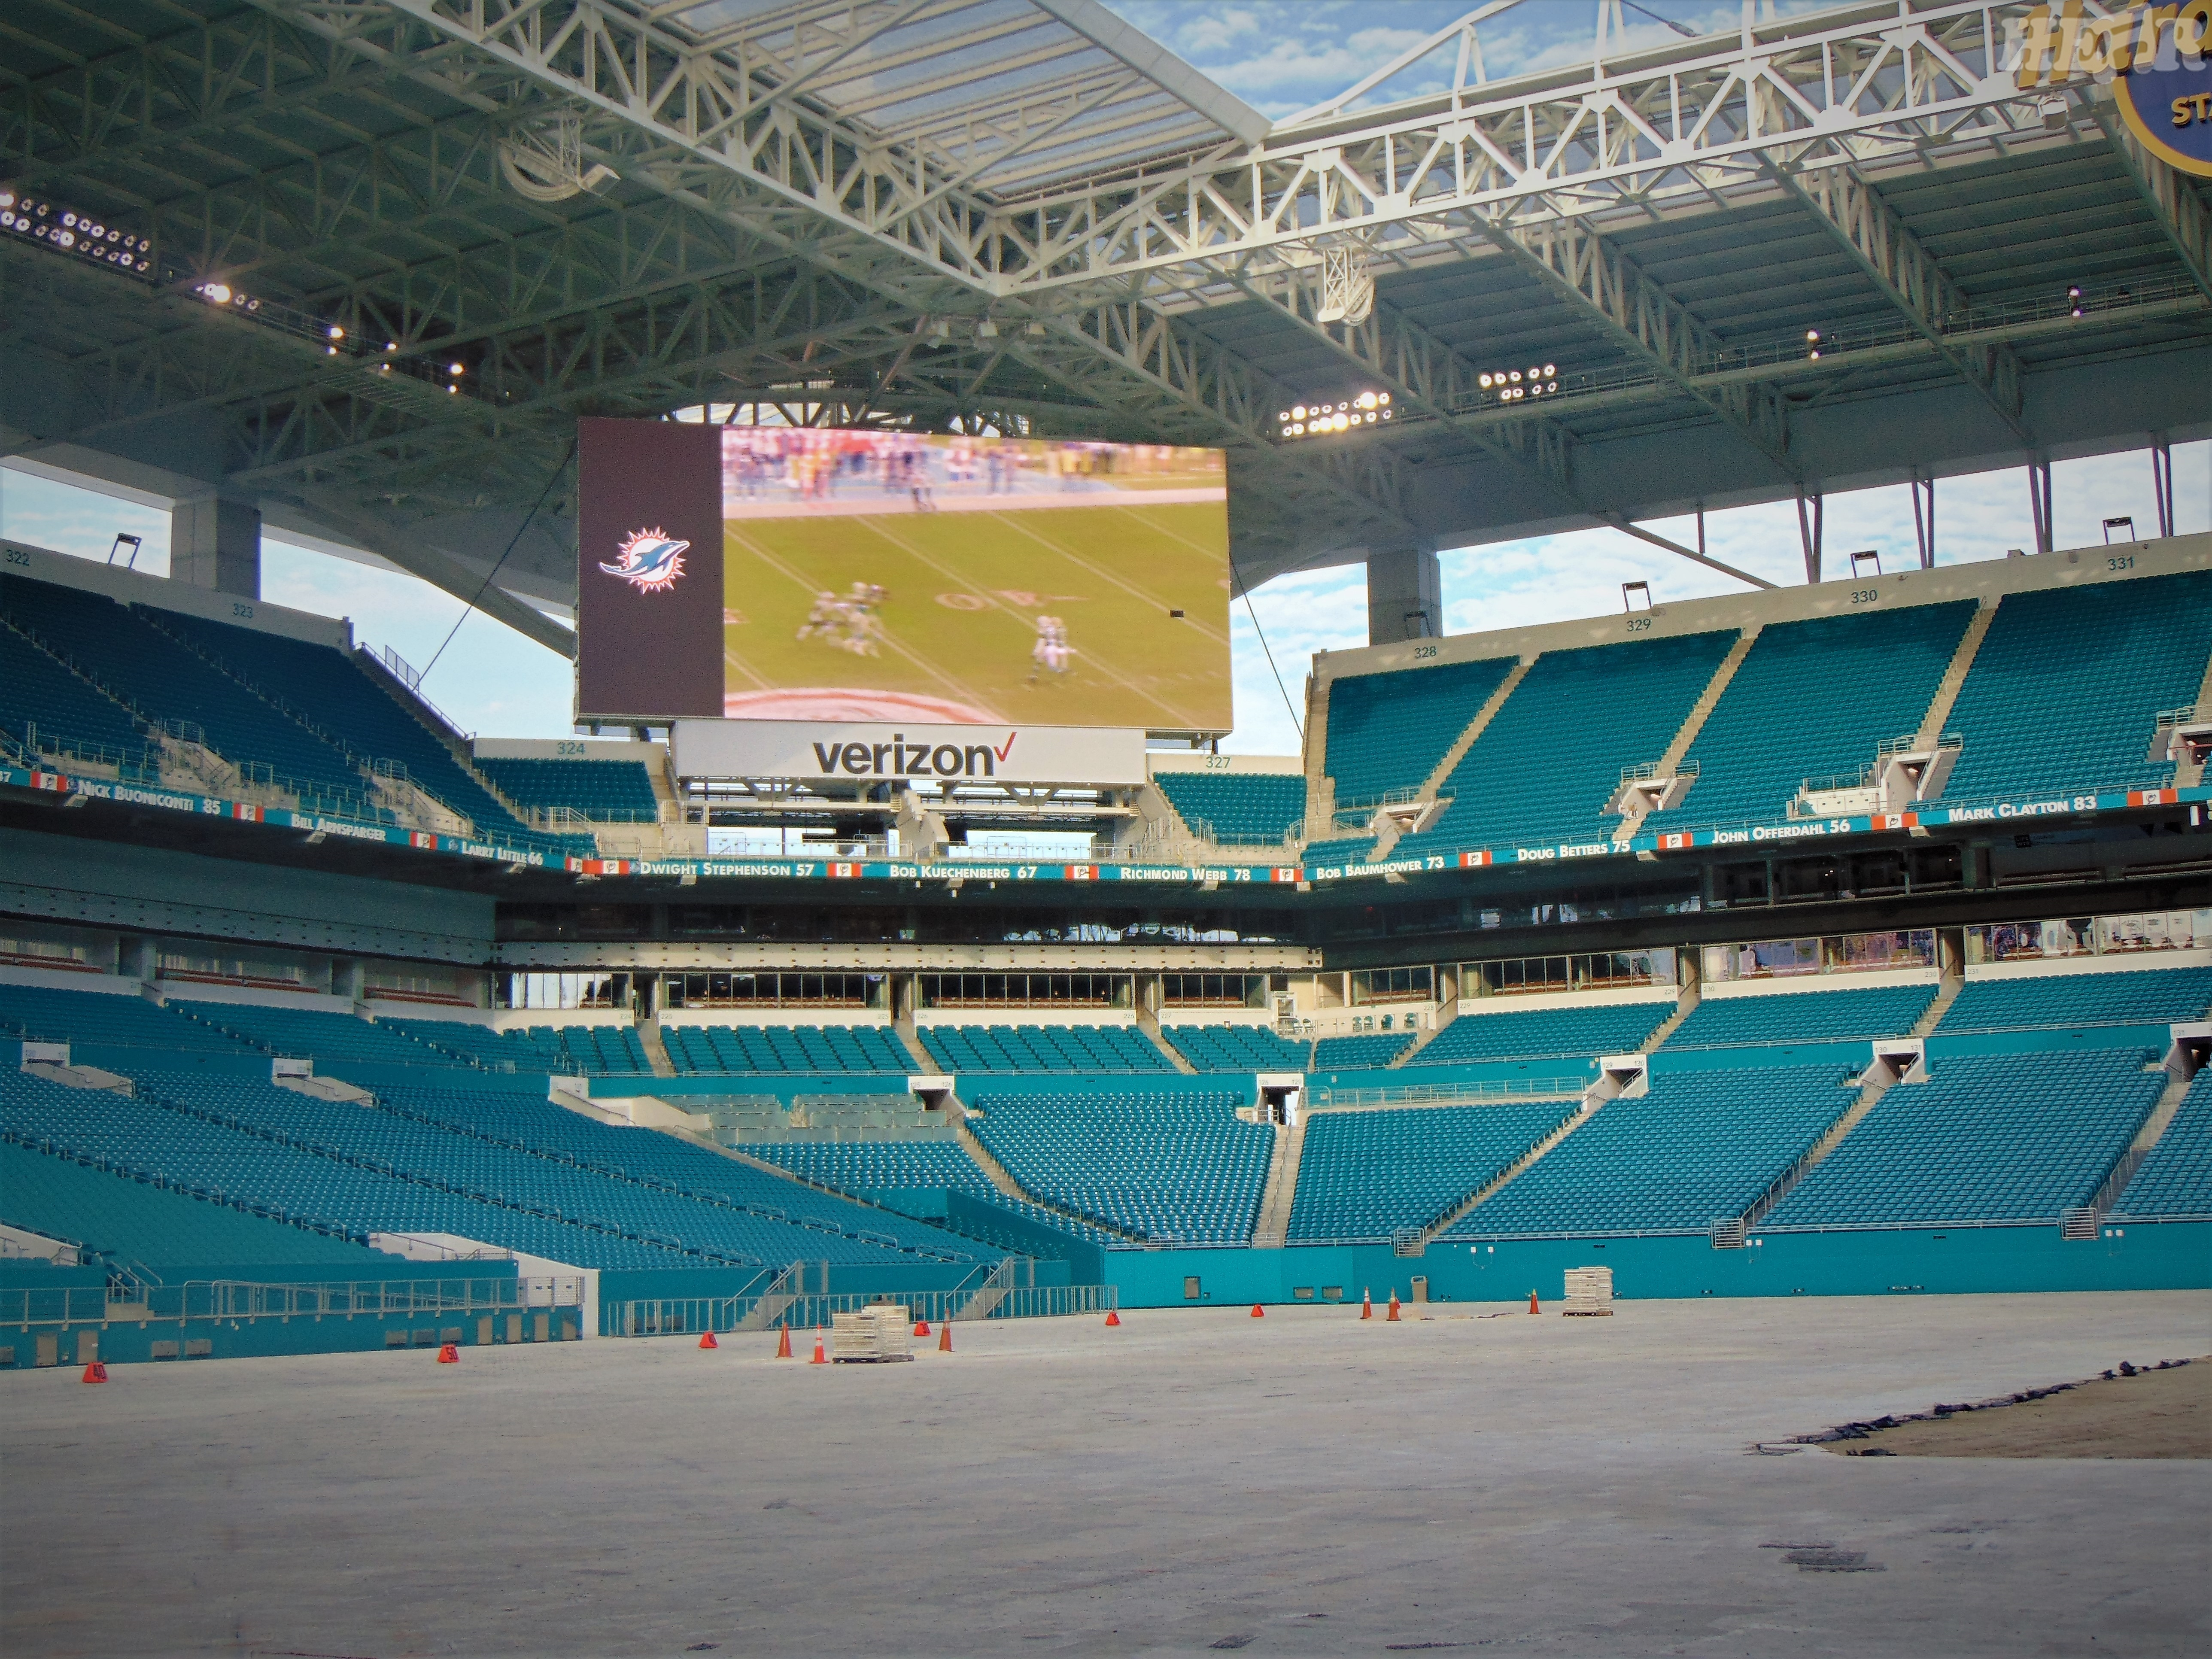 Miami Dolphins Draft Party 34